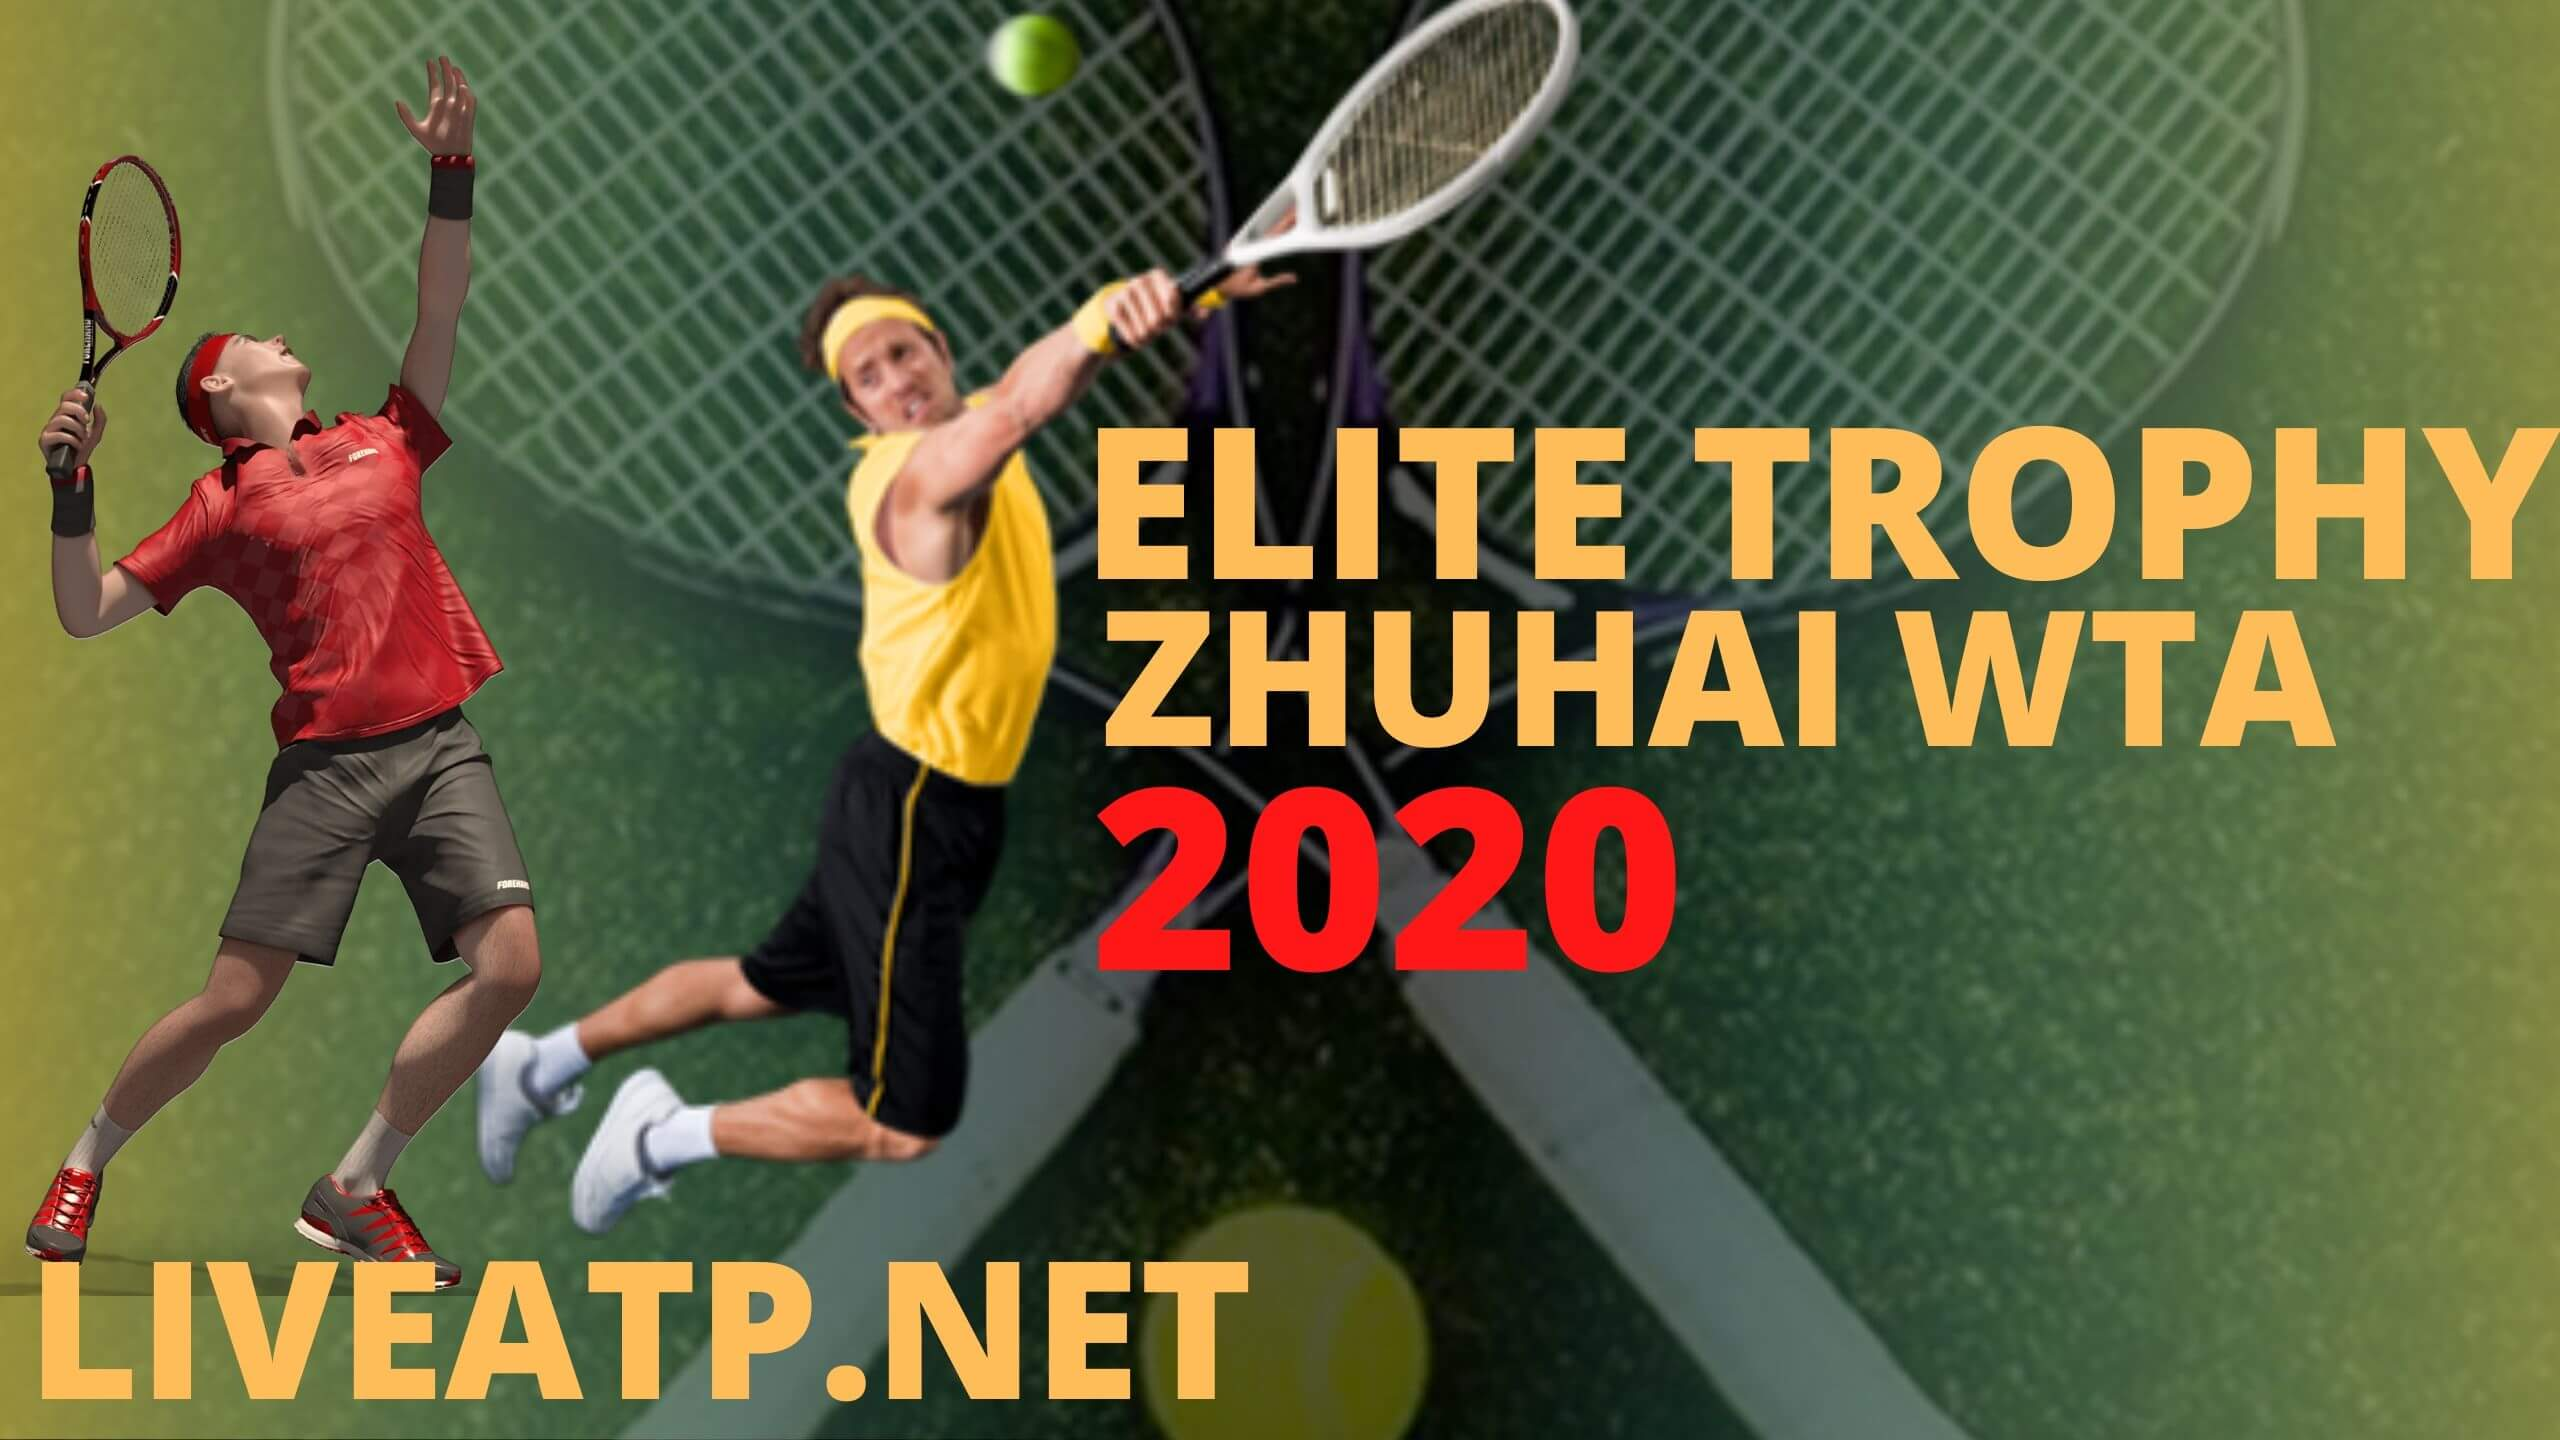 WTA Elite Trophy Zhuhai Live Stream 2020 | Day 2